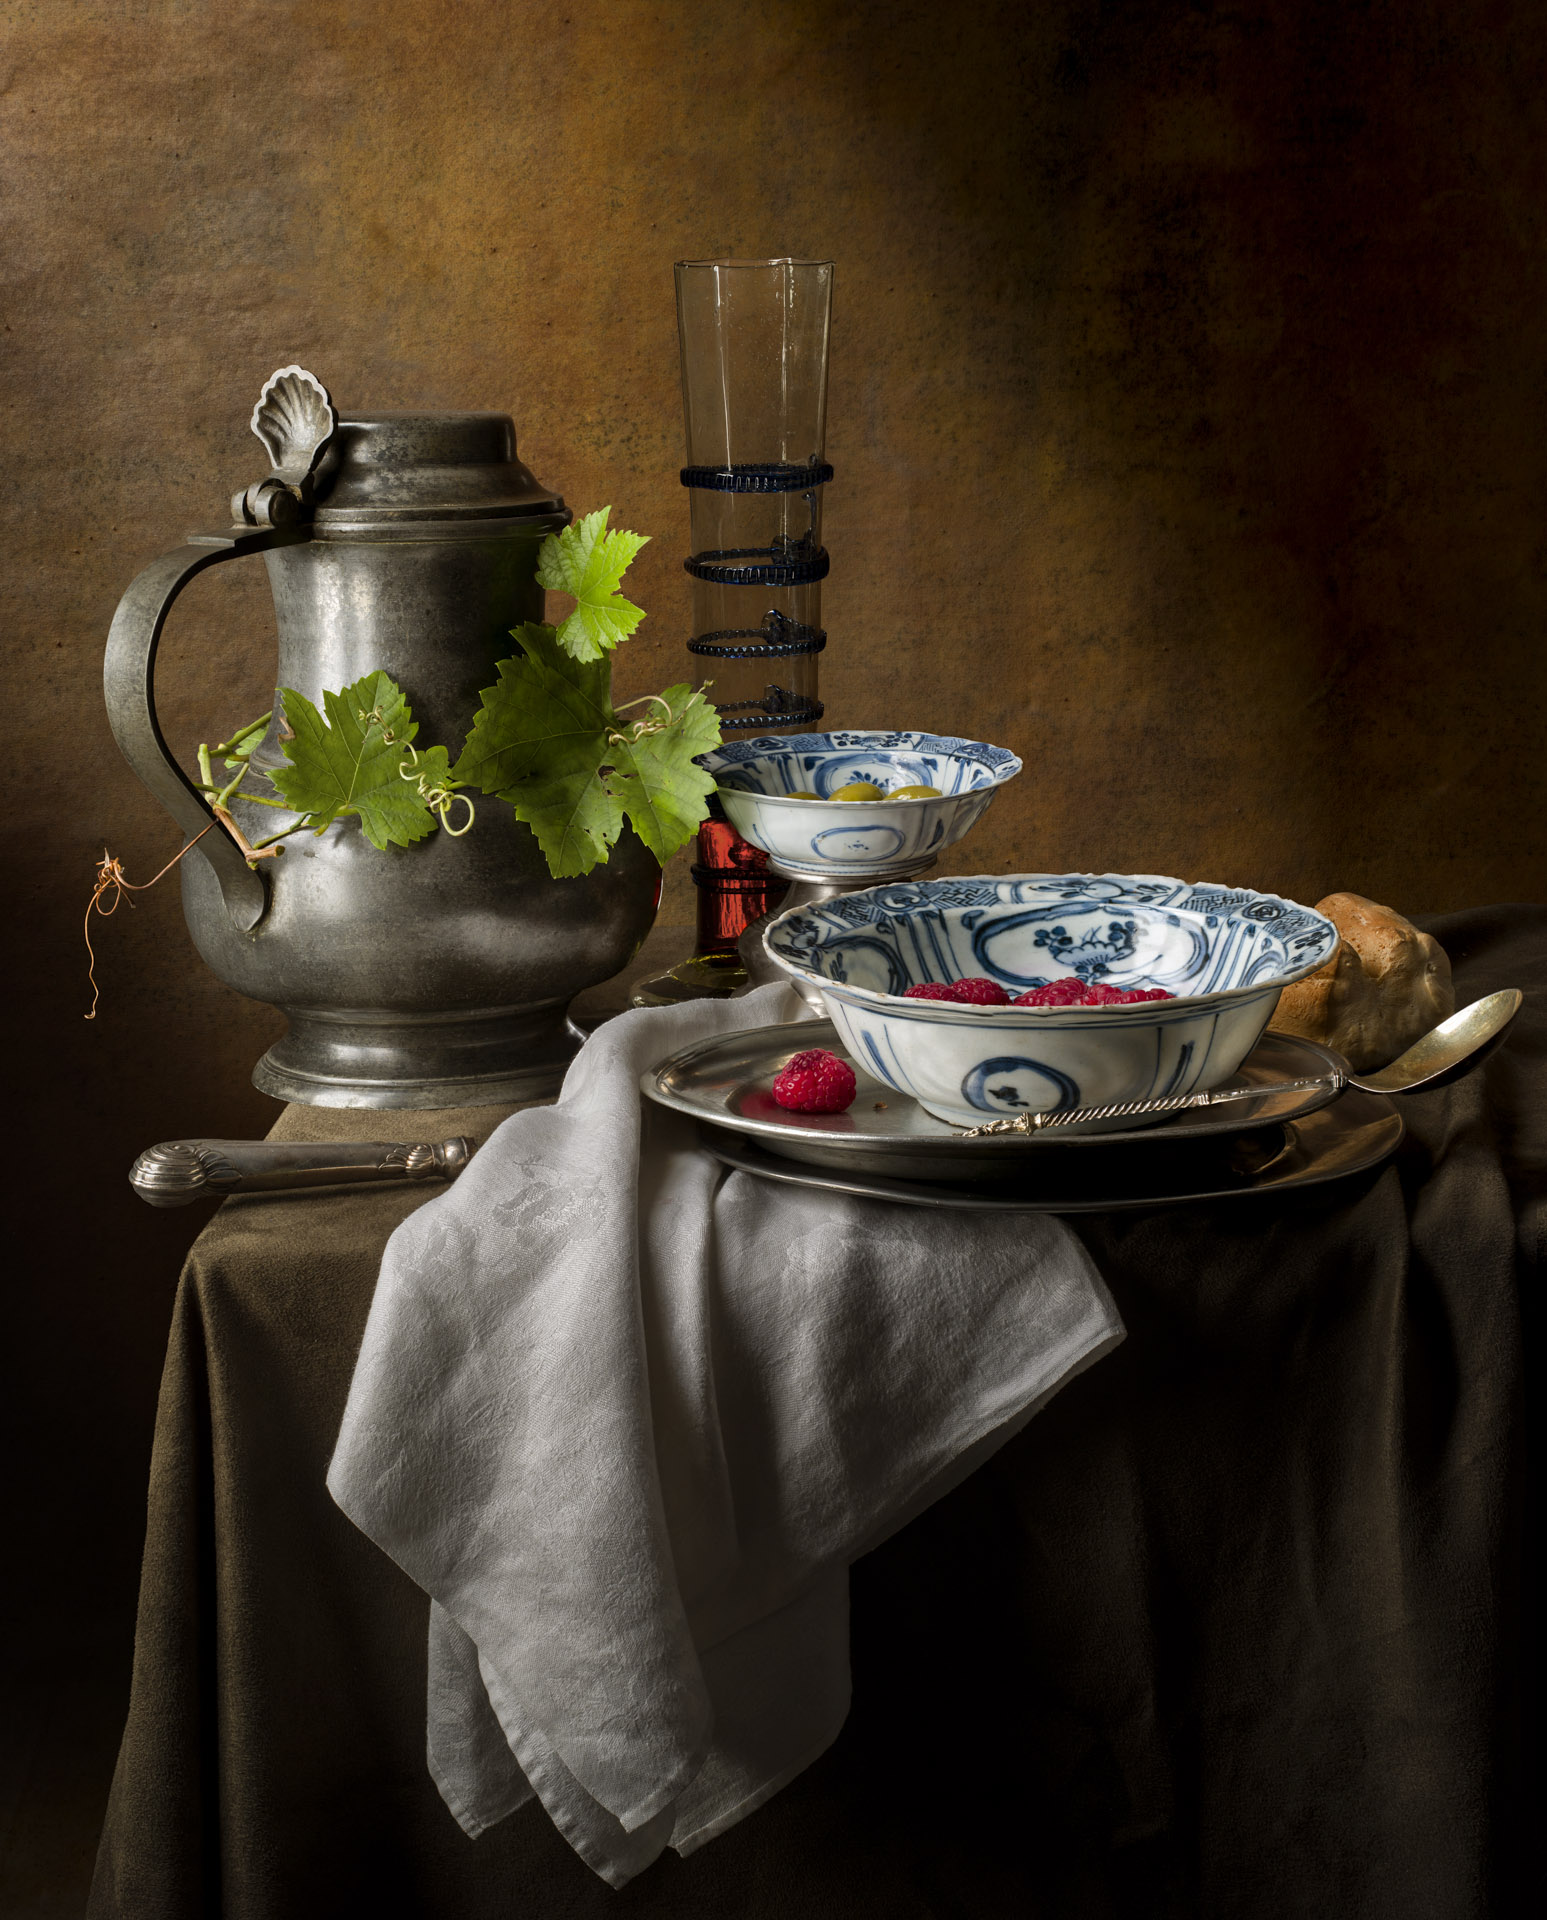 Still life with ming bowls